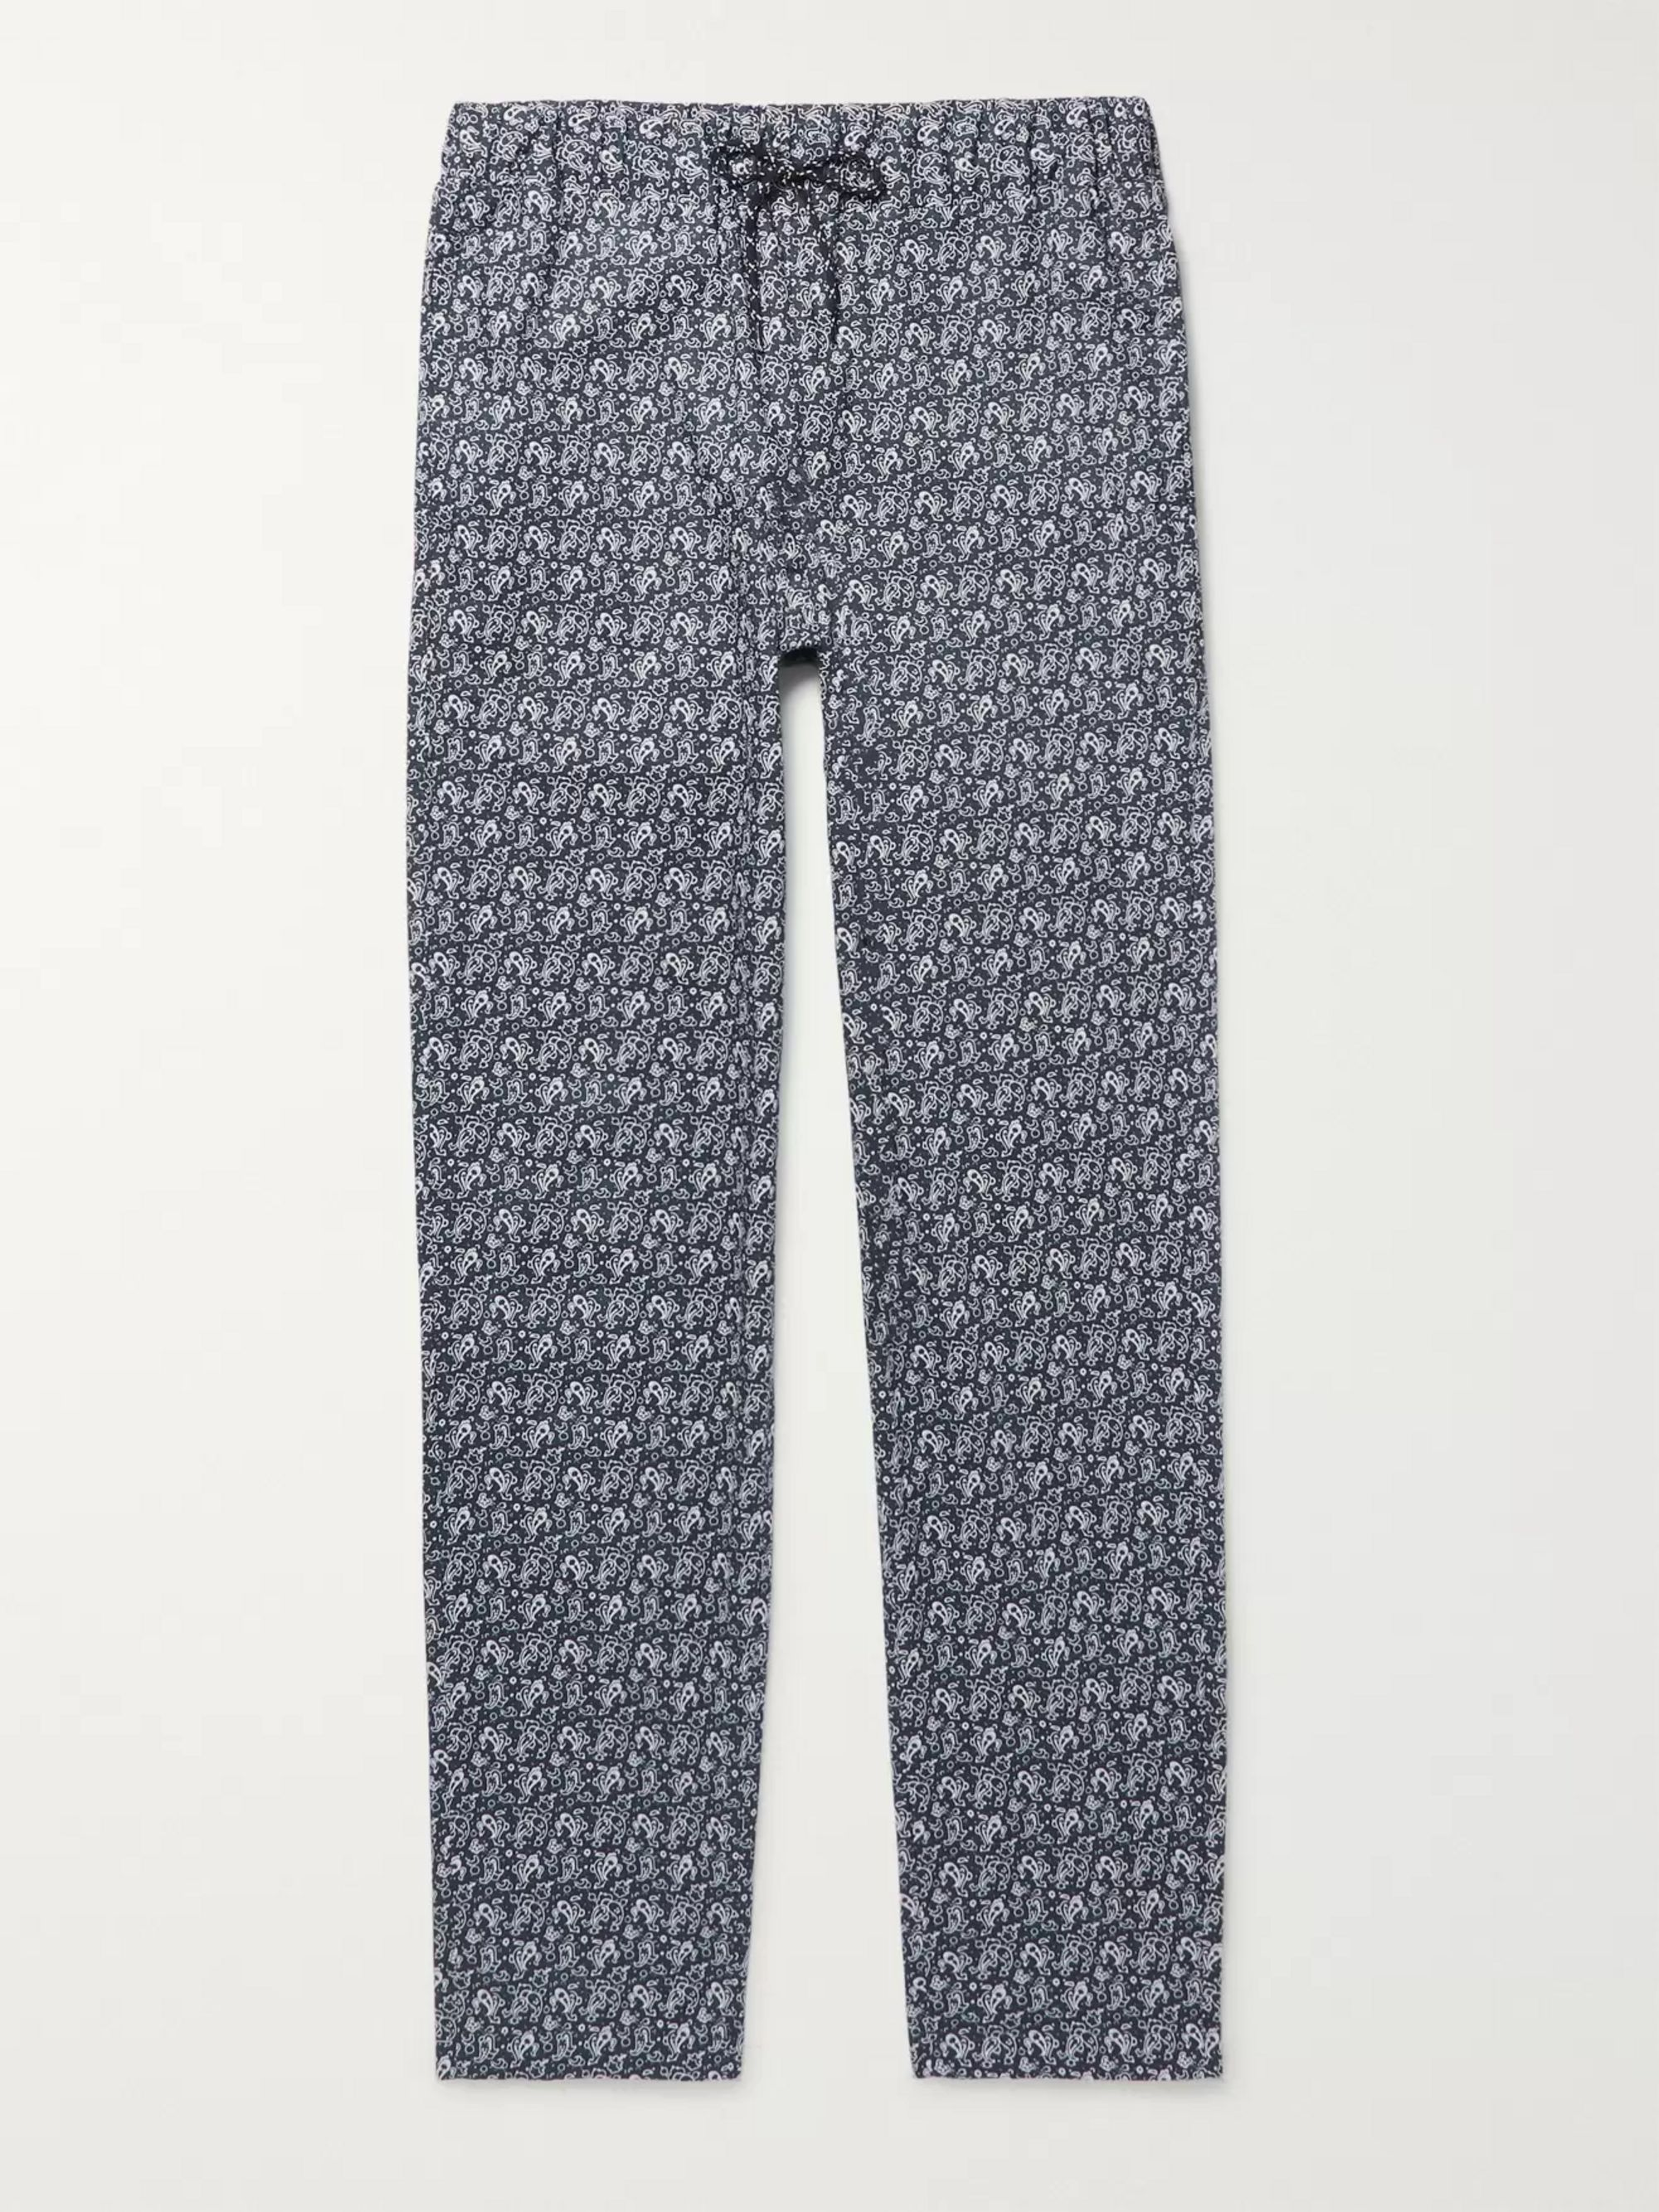 A.P.C. Kaplan Bandana-Print Cotton Drawstring Trousers